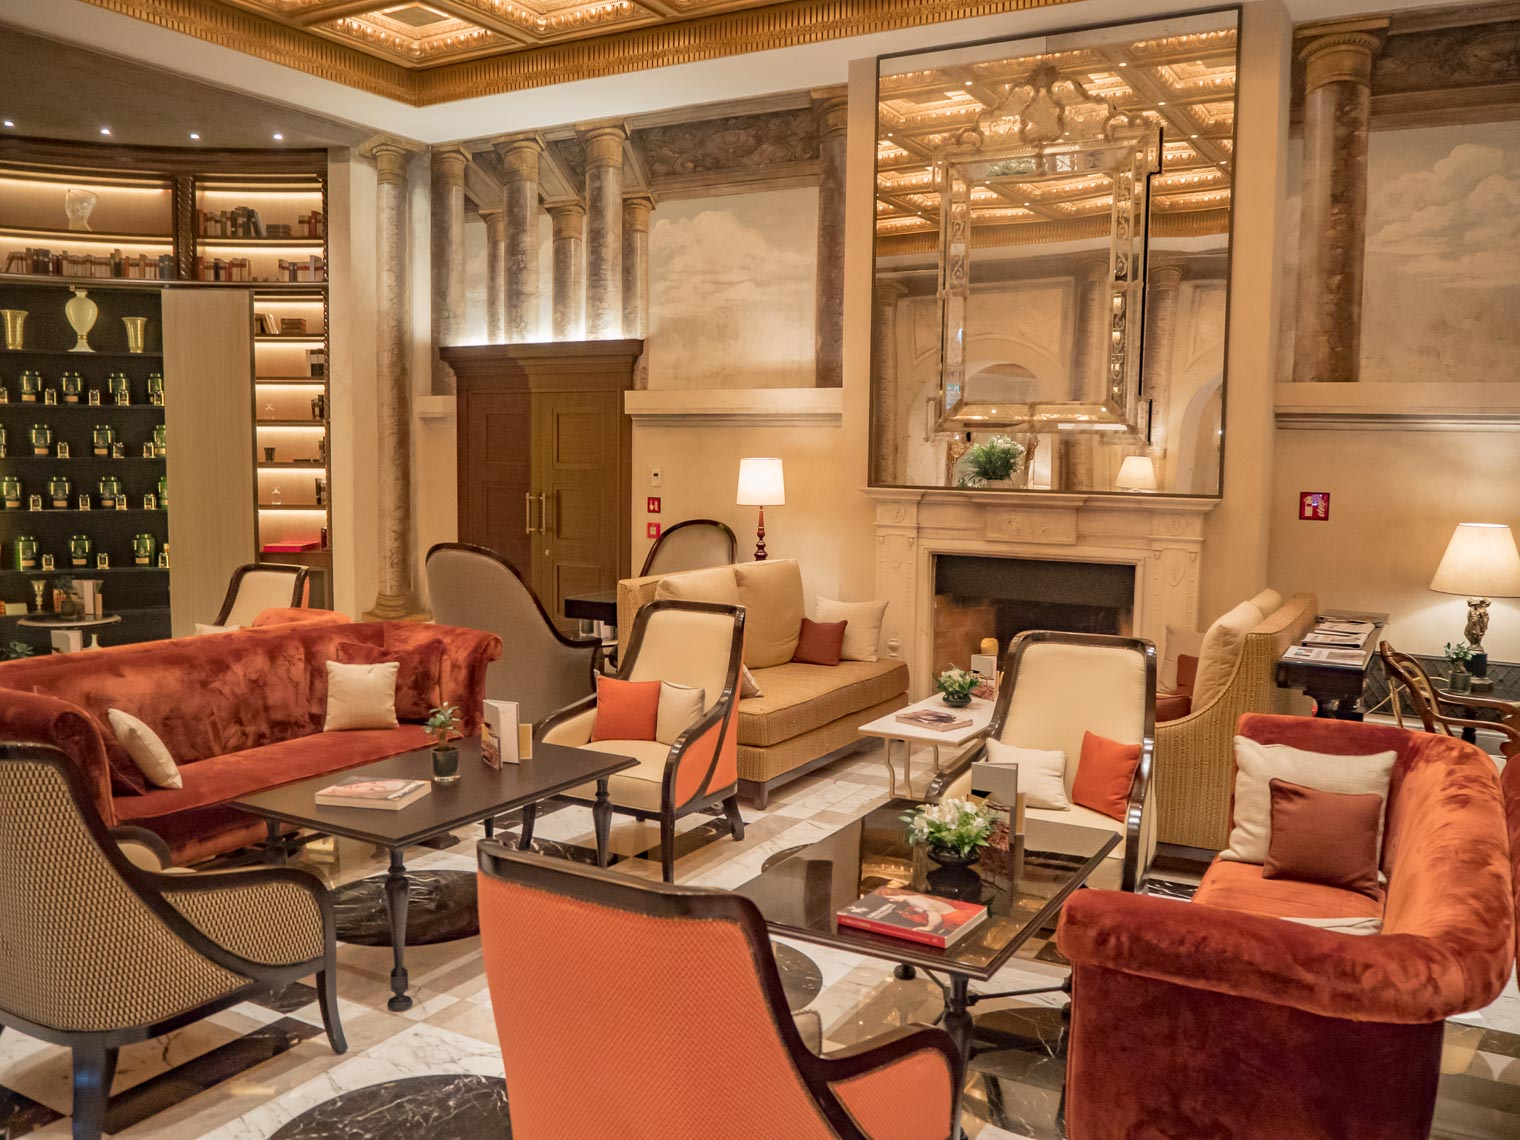 Hotel review Hotel Eden Rome Dorchester collection